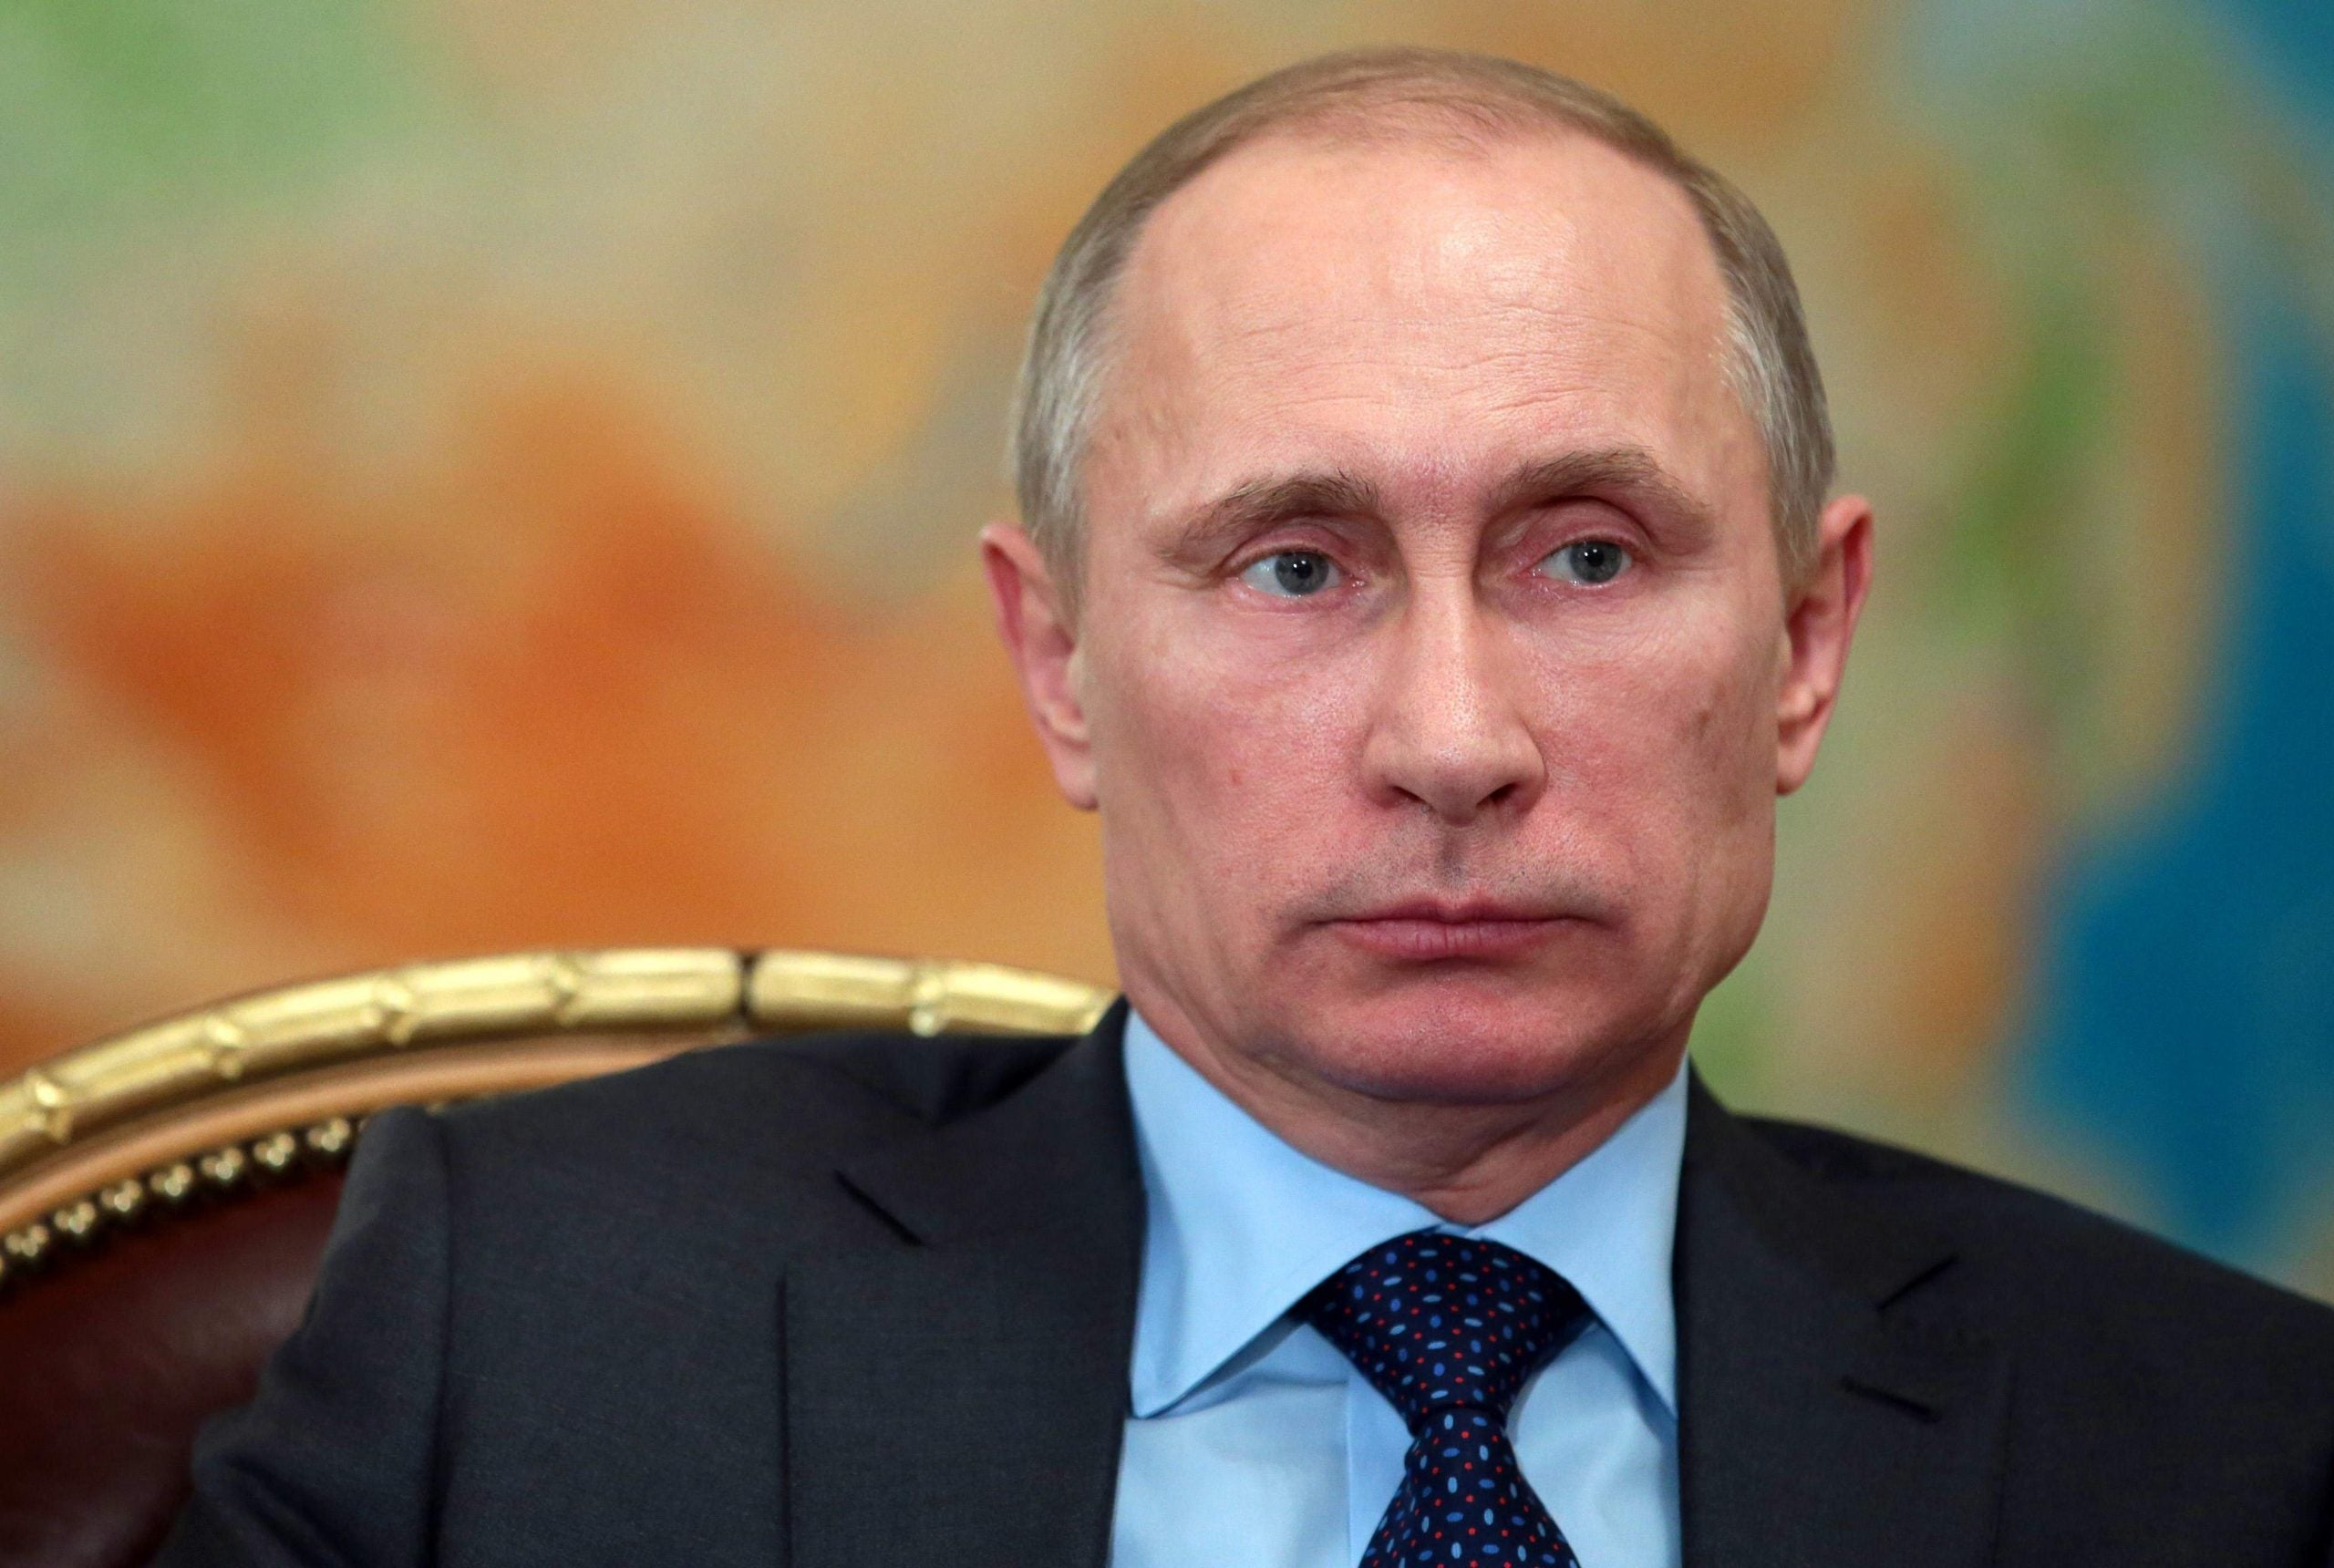 The assassination of Boris Nemtsov shows that in Putin's Russia, anything is permitted